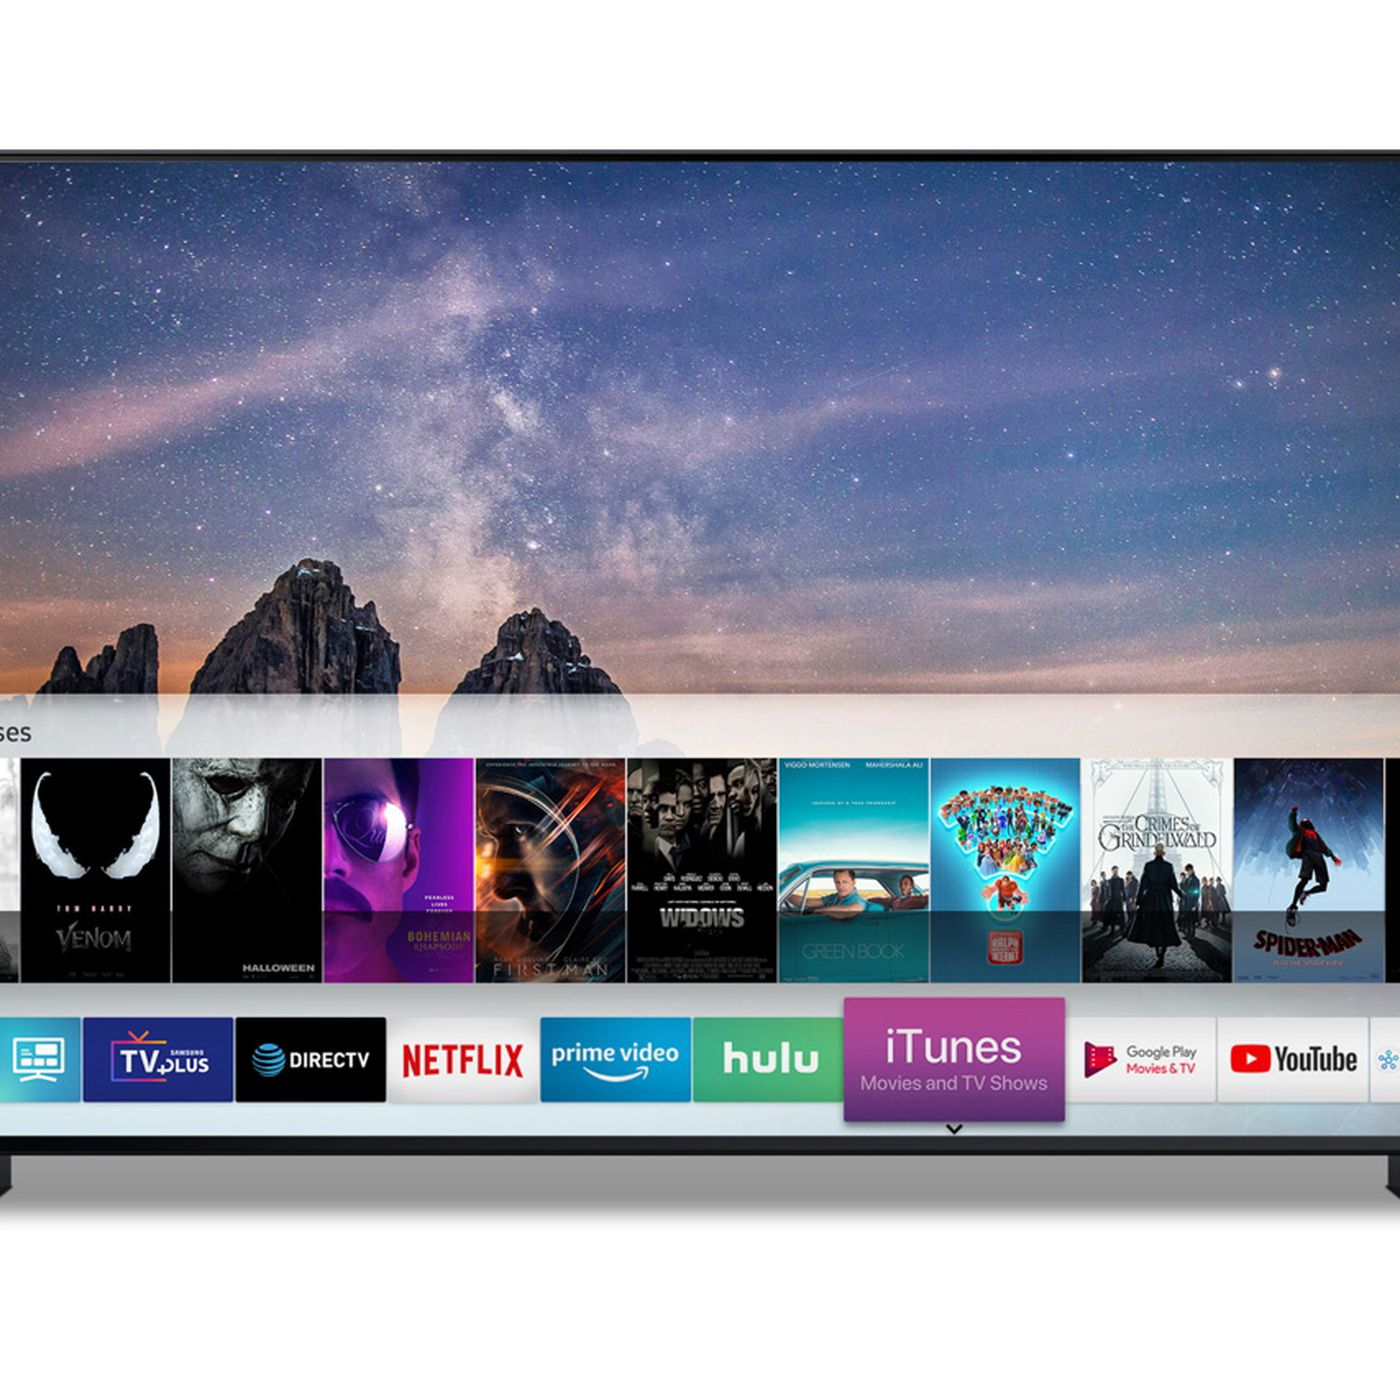 Apple is putting iTunes on Samsung TVs - The Verge